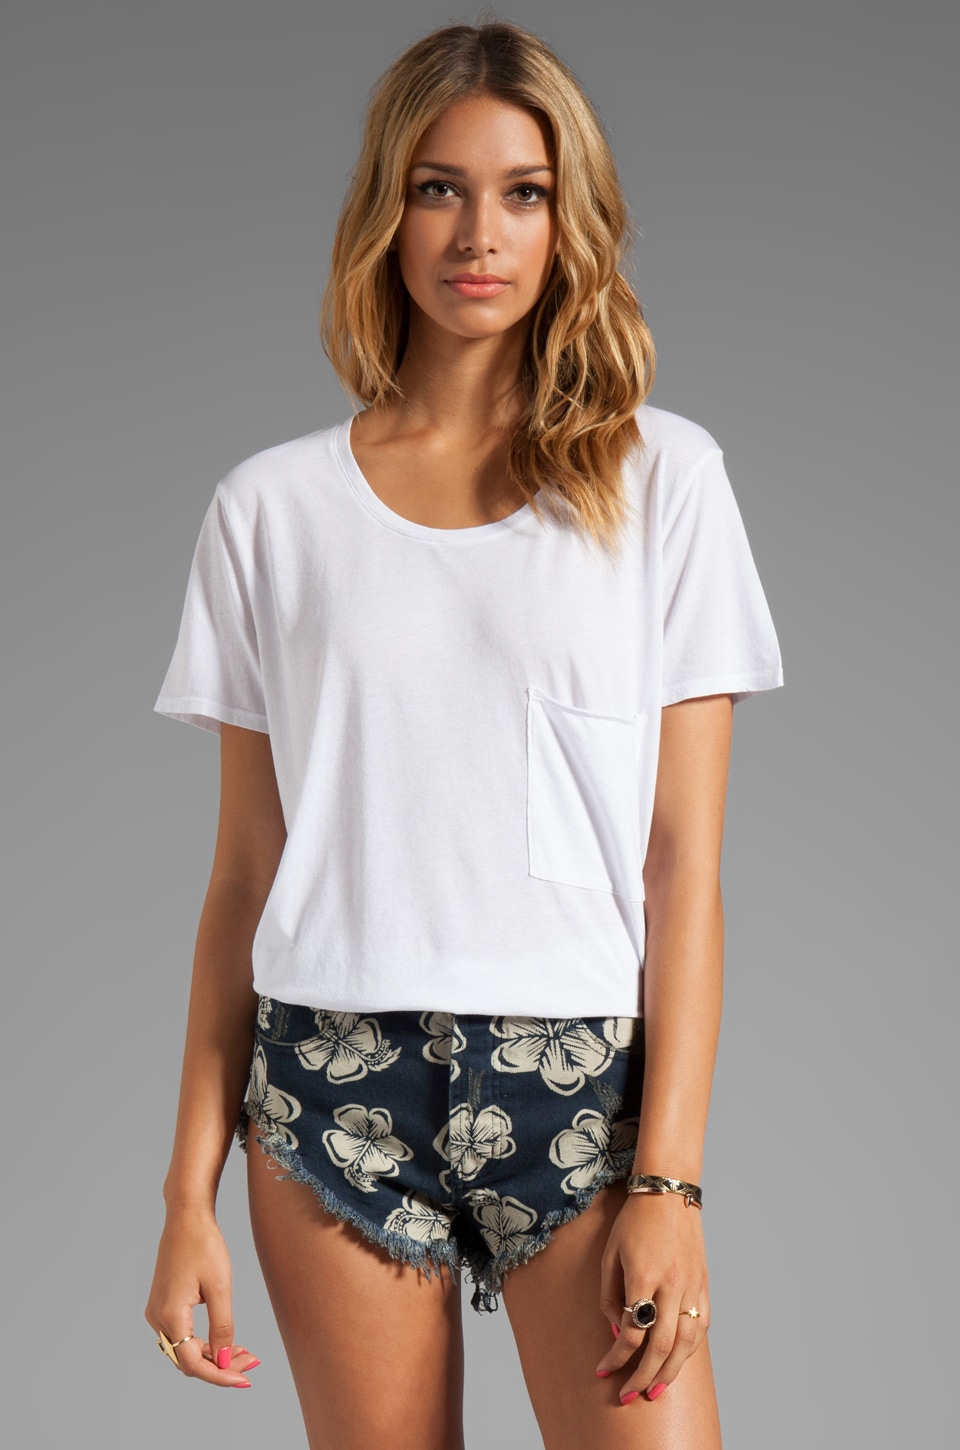 Daftbird Oversized Scoop Neck Pocket Tee in White